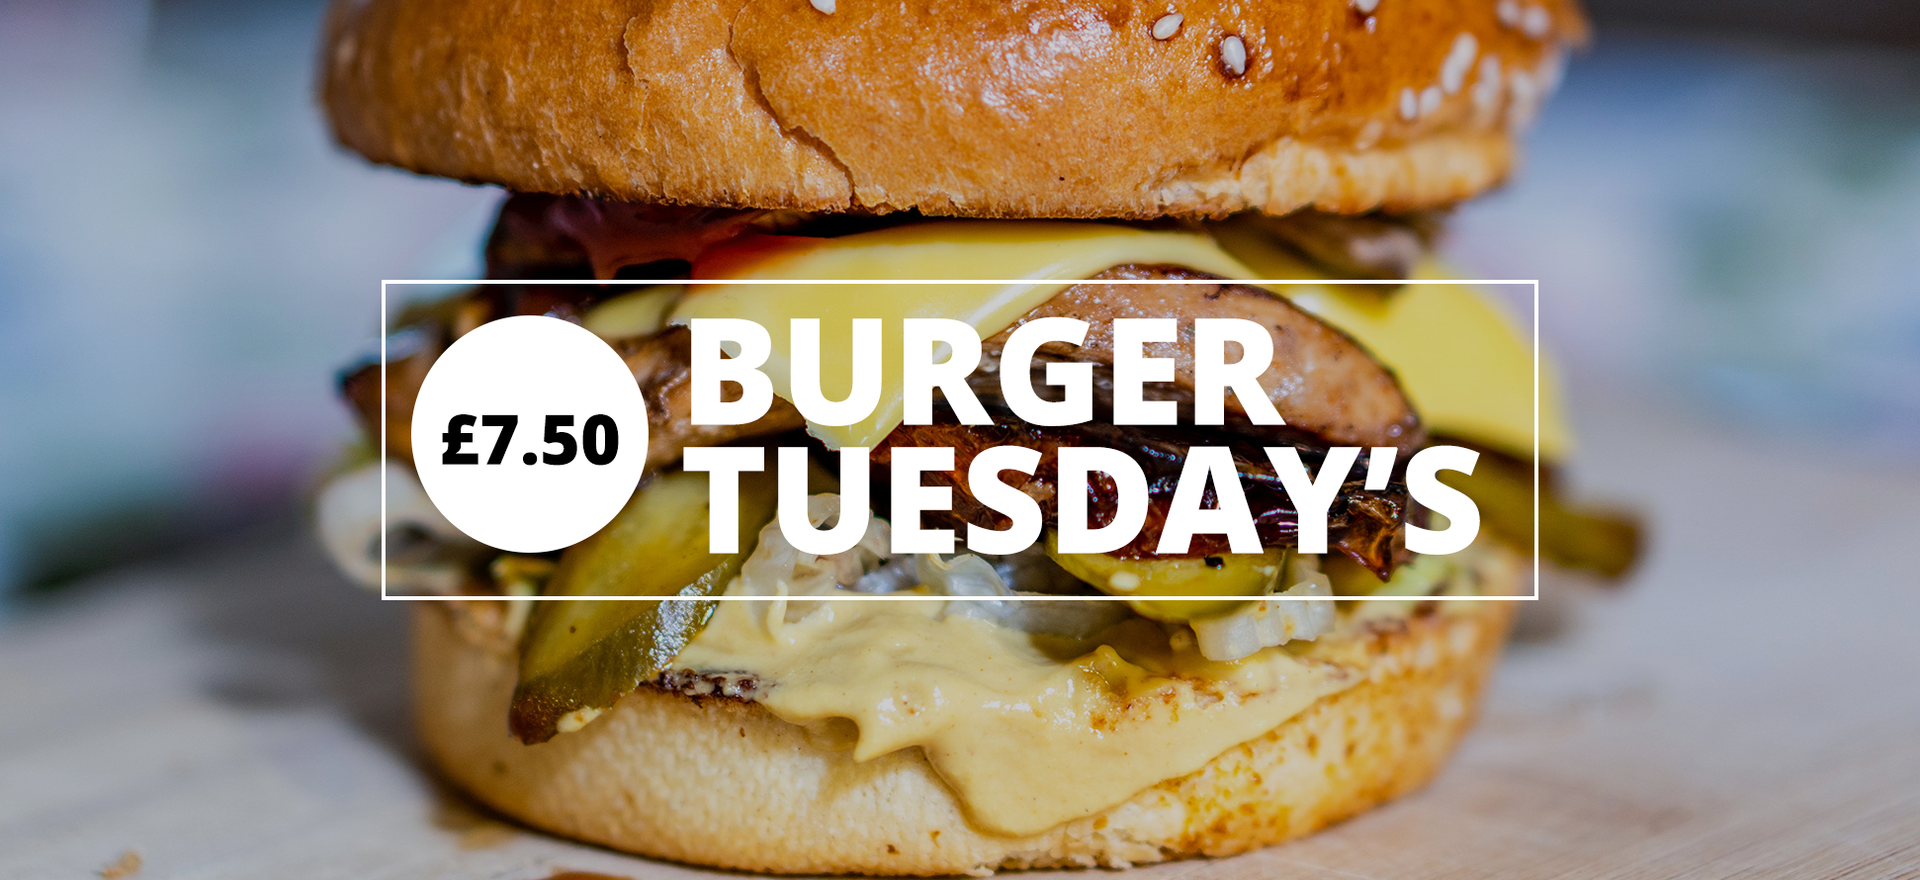 Burger Tuesday's - £7.50